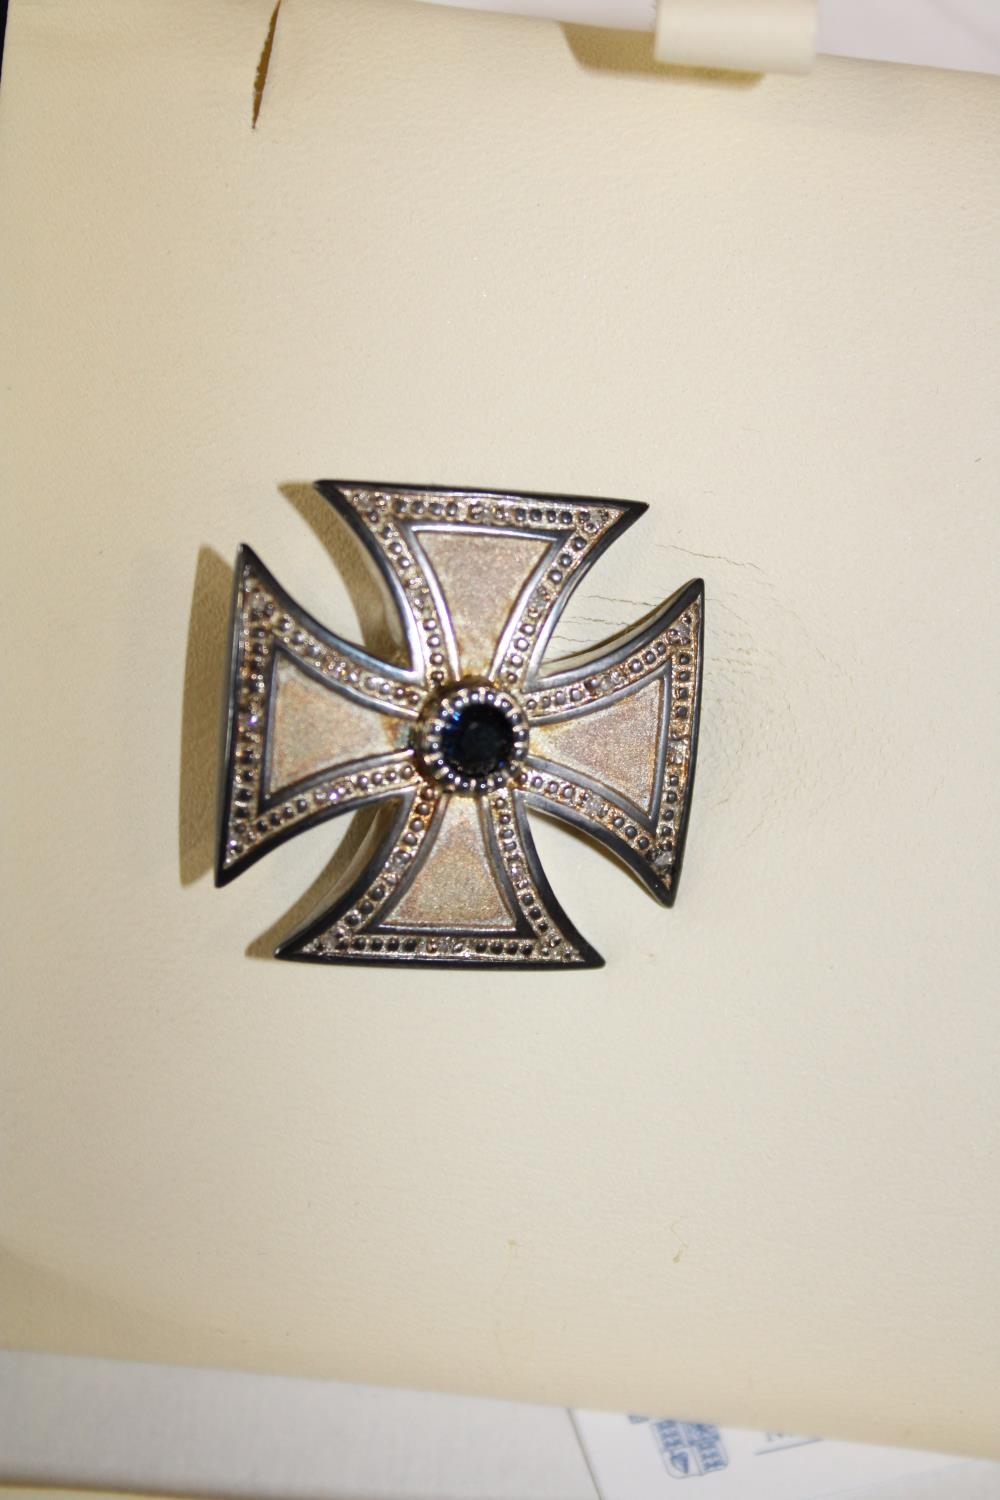 A Royal Mint hallmarked silver Victoria Cross brooch with sapphire